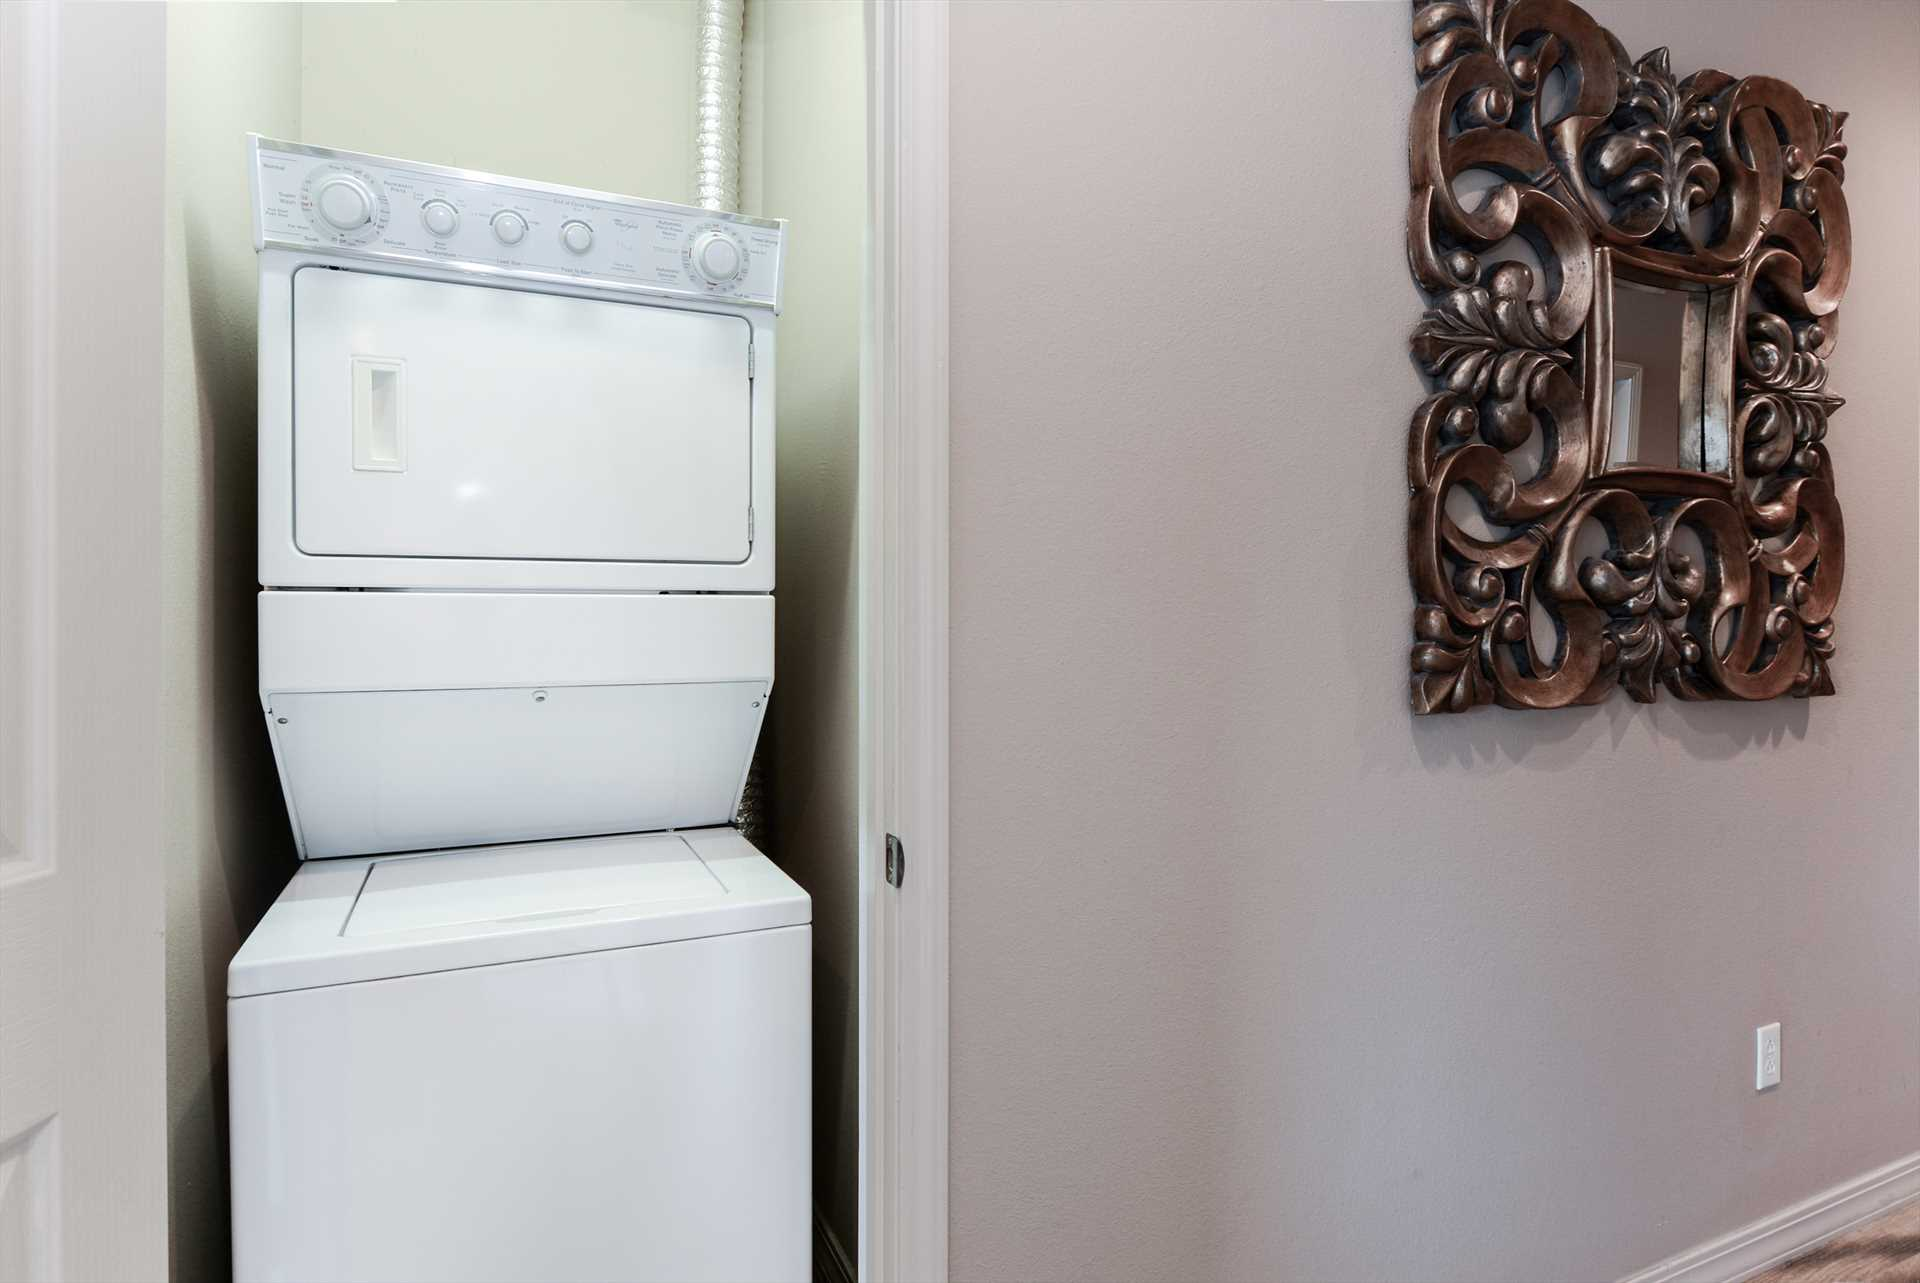 Unit includes washer and dryer.